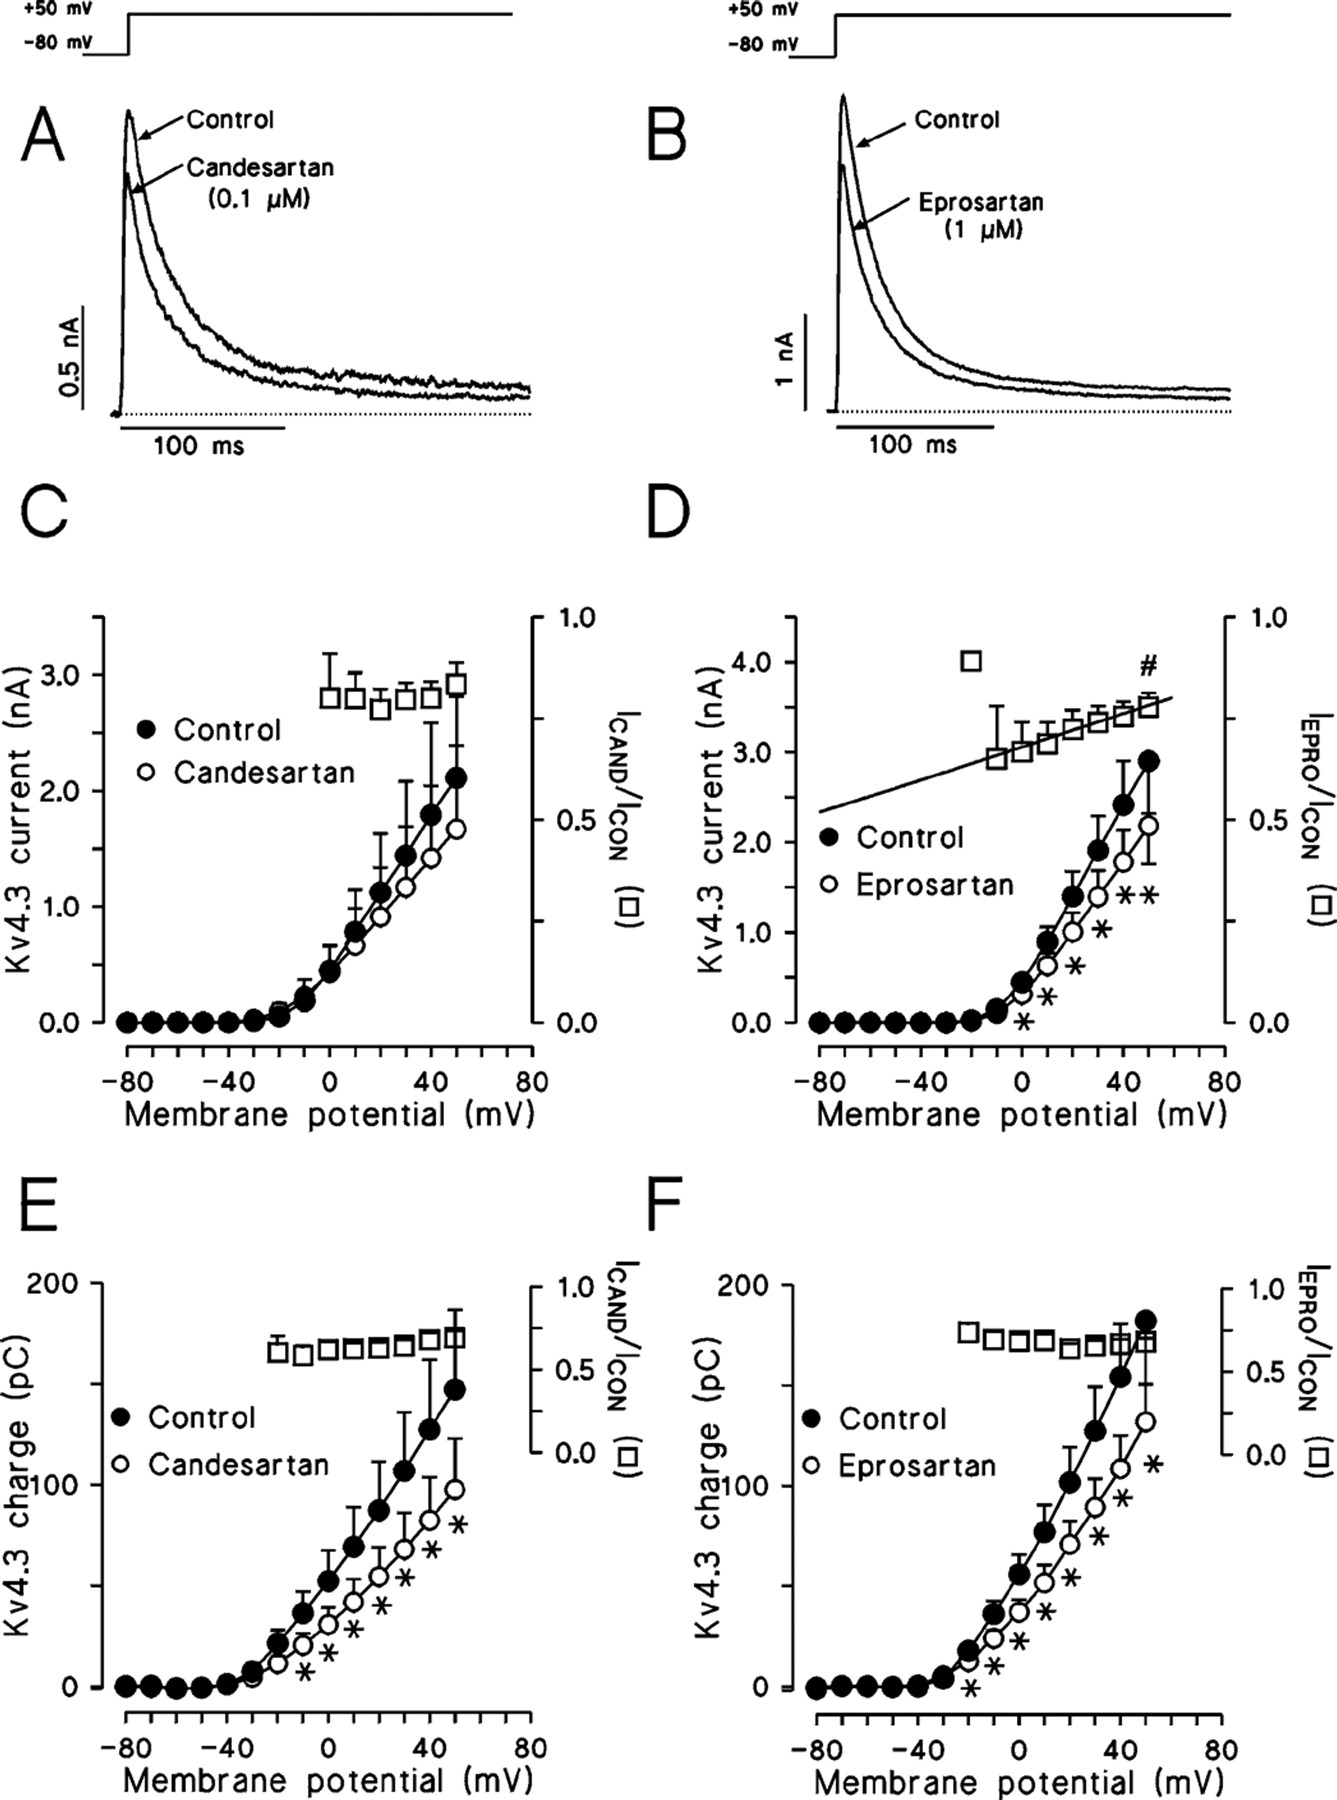 Direct Effects Of Candesartan And Eprosartan On Human Cloned Potassium Channels Involved In